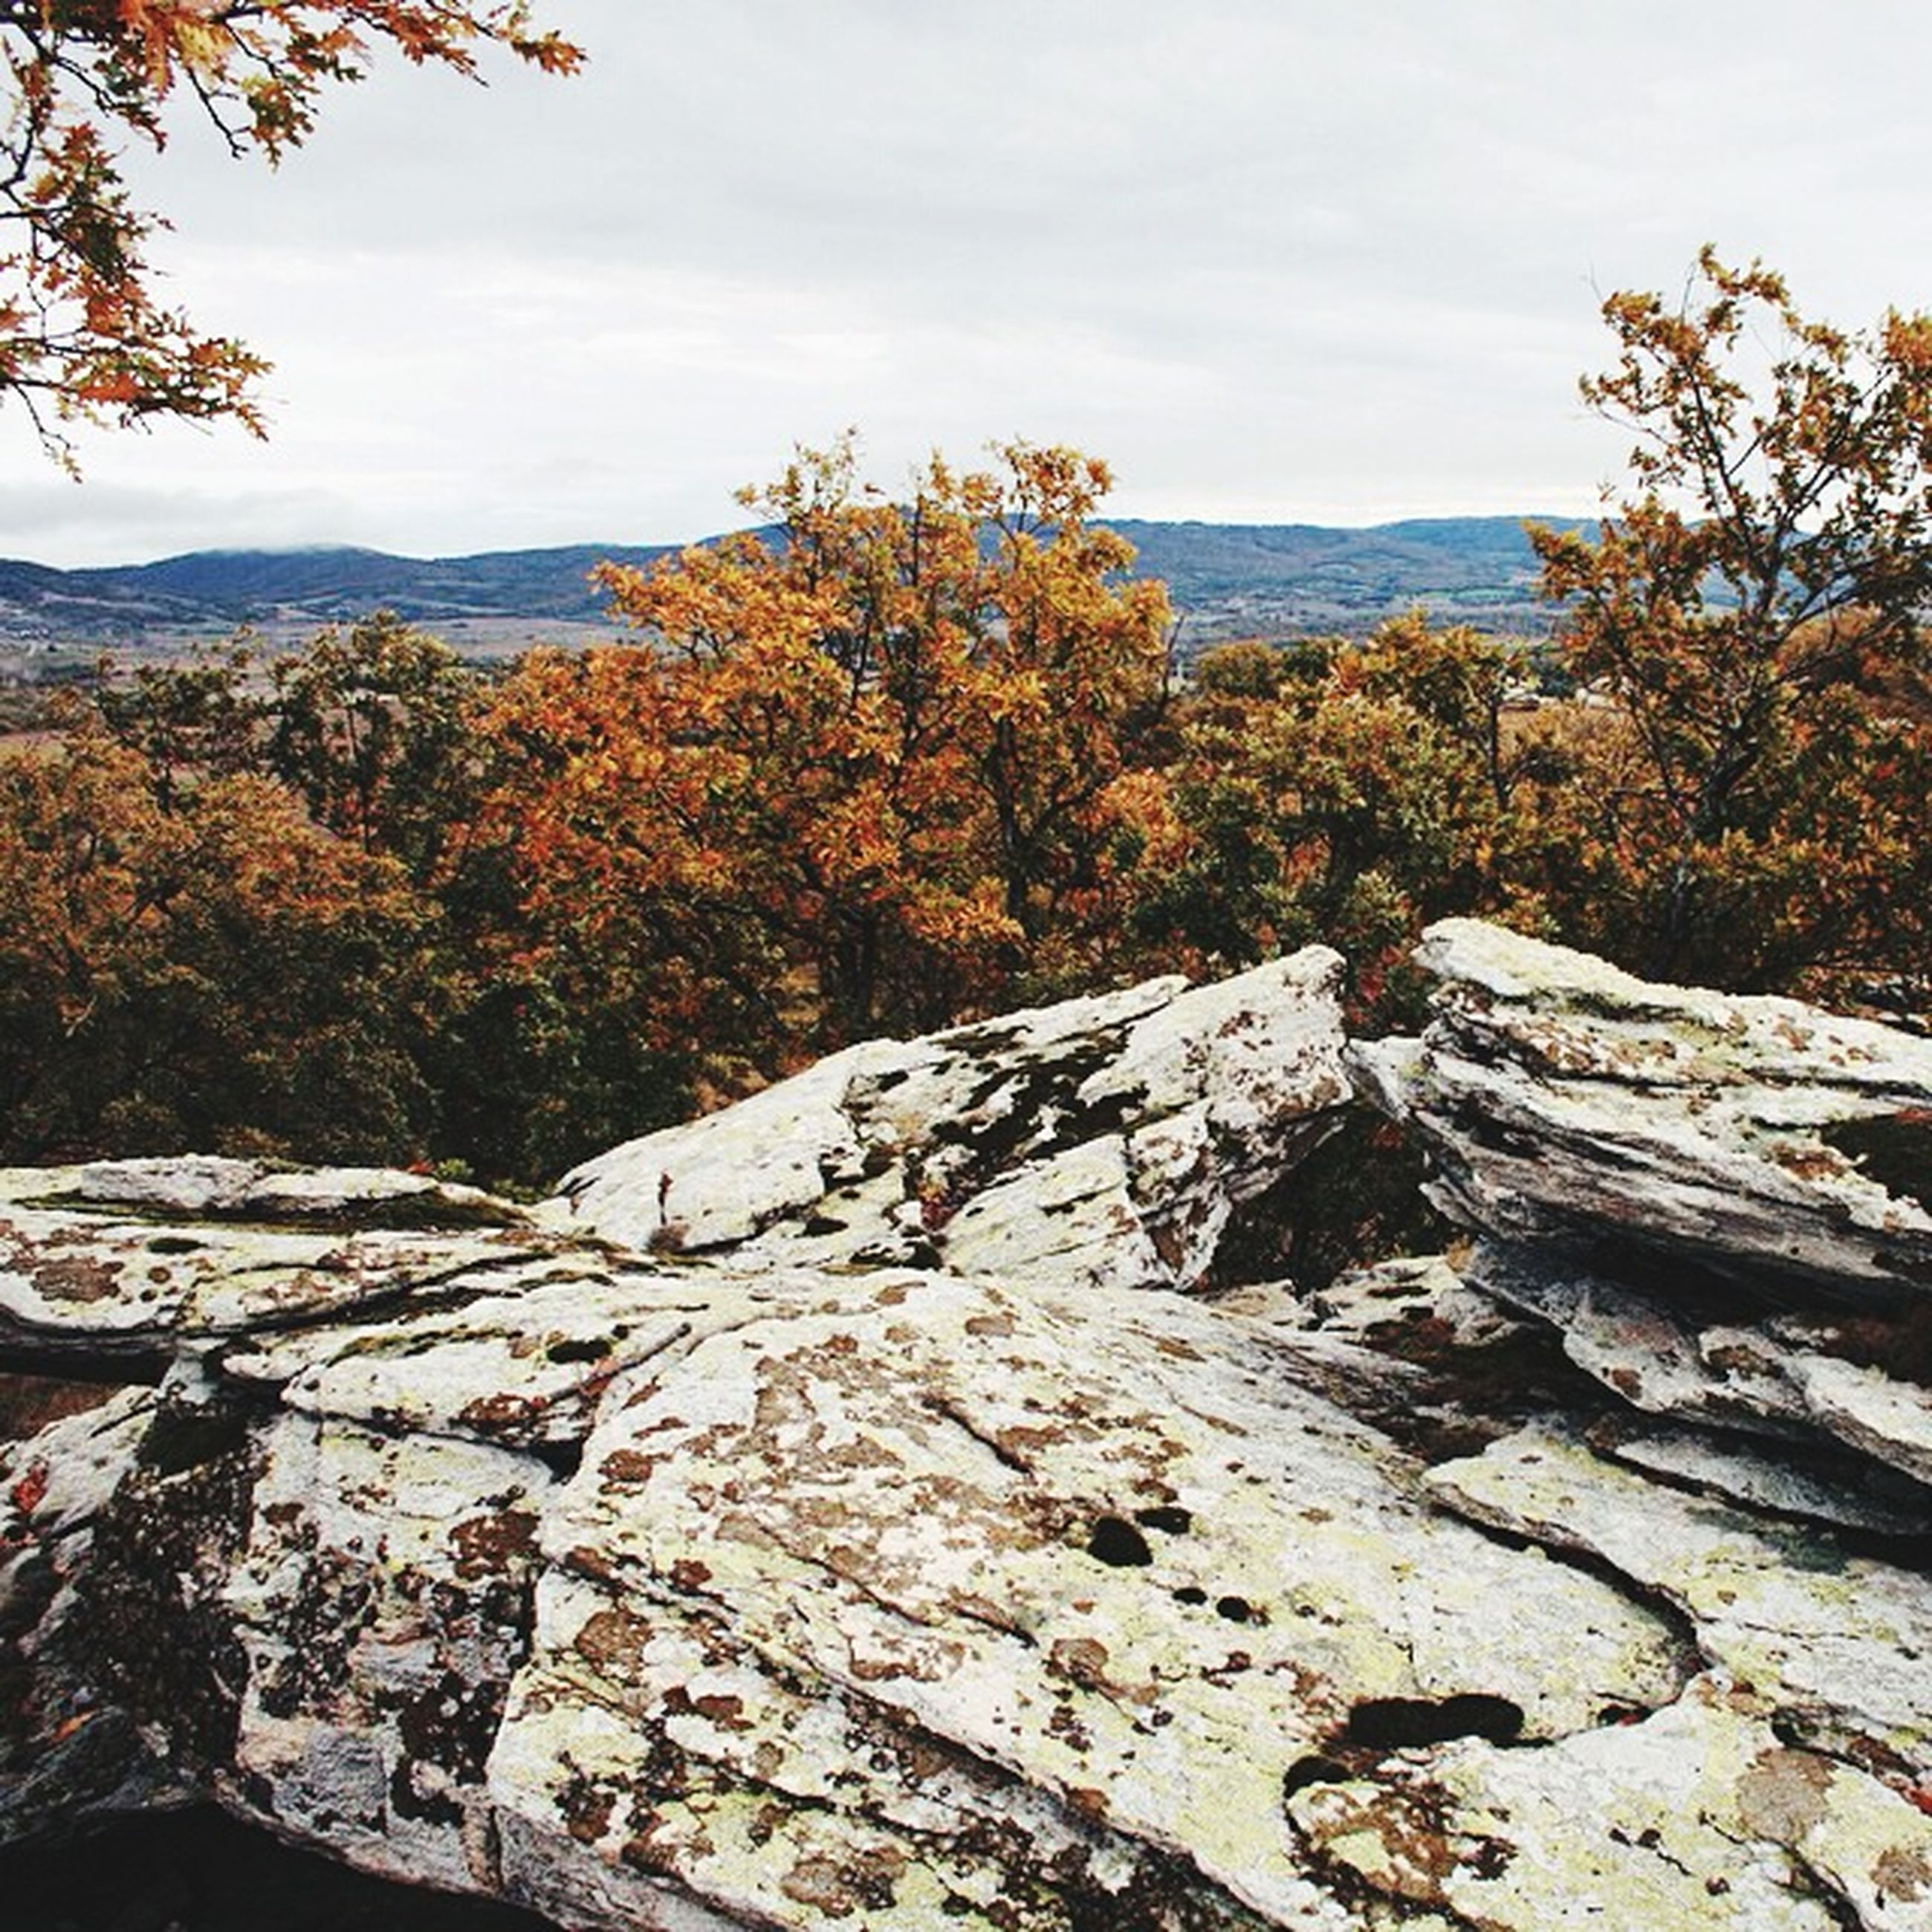 tree, tranquility, tranquil scene, sky, beauty in nature, scenics, nature, rock - object, landscape, growth, autumn, mountain, day, idyllic, no people, non-urban scene, outdoors, branch, cloud - sky, change